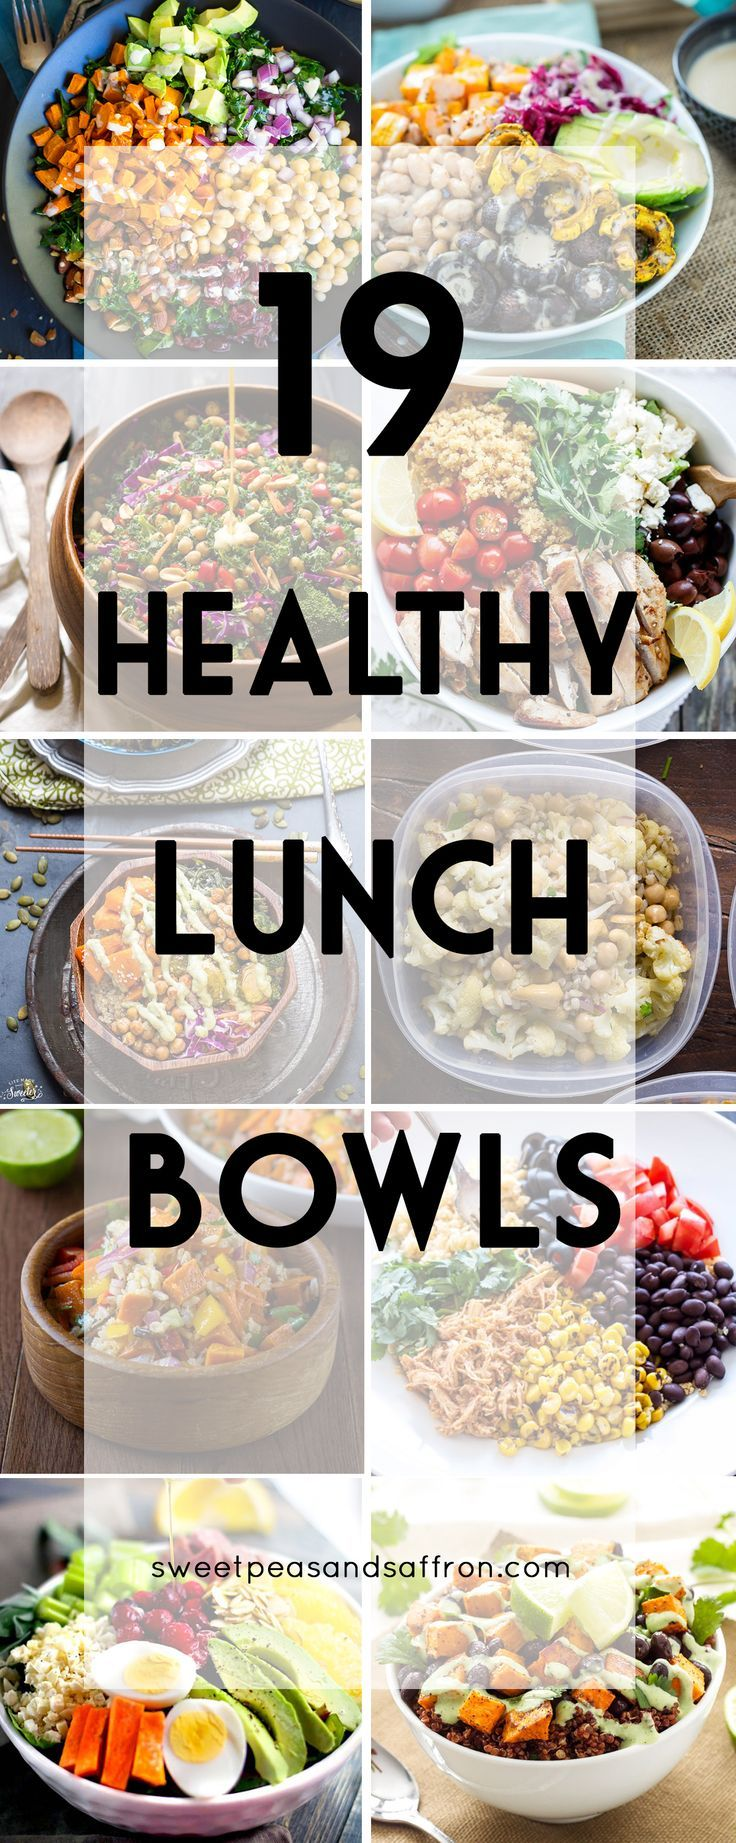 219 best lunch munch images on pinterest cooking food healthy 219 best lunch munch images on pinterest cooking food healthy meals and clean eating meals forumfinder Choice Image